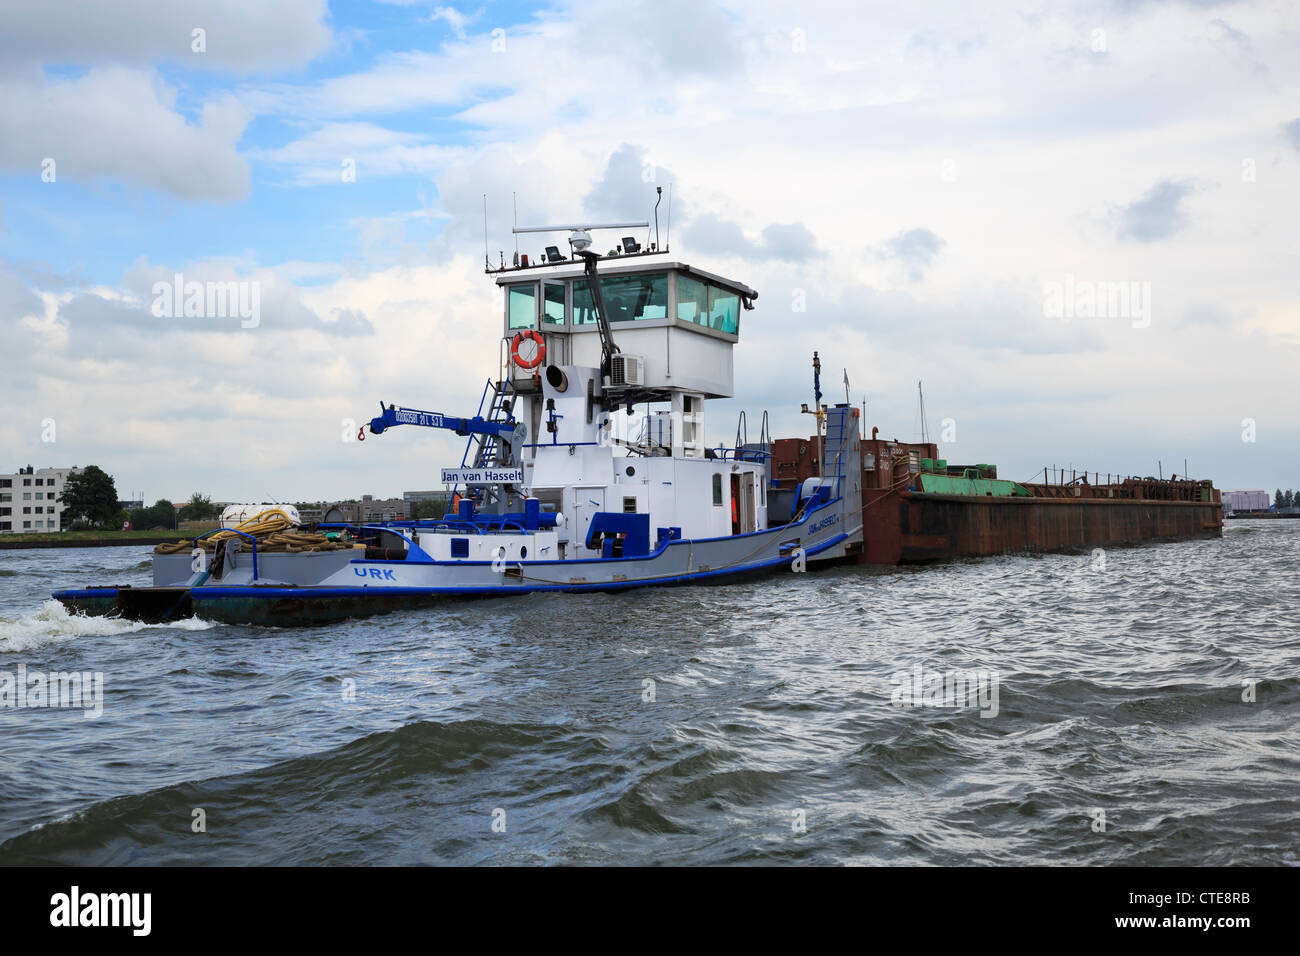 The inland tug Jan Van Hasselt, built in 1953, pushing a barge in the Port of Amsterdam. - Stock Image